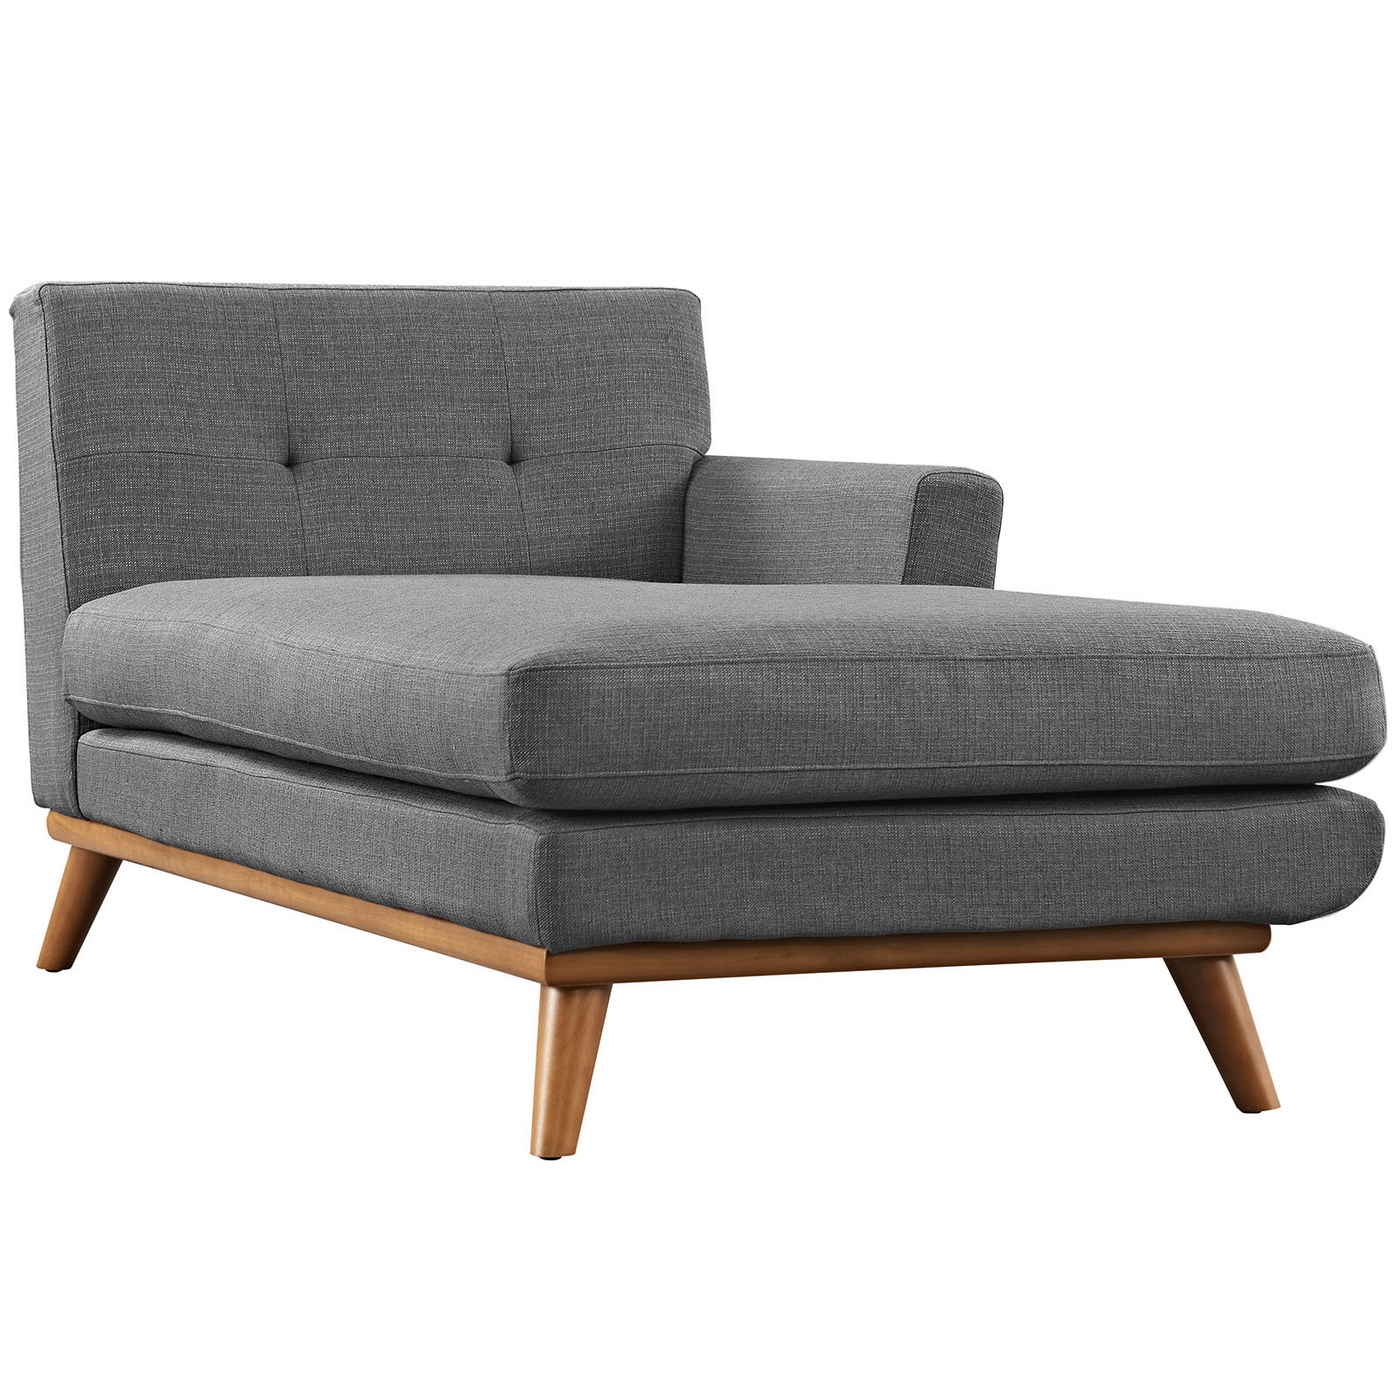 Engage modern button tufted upholstered right arm chaise gray for Button tufted chaise settee green